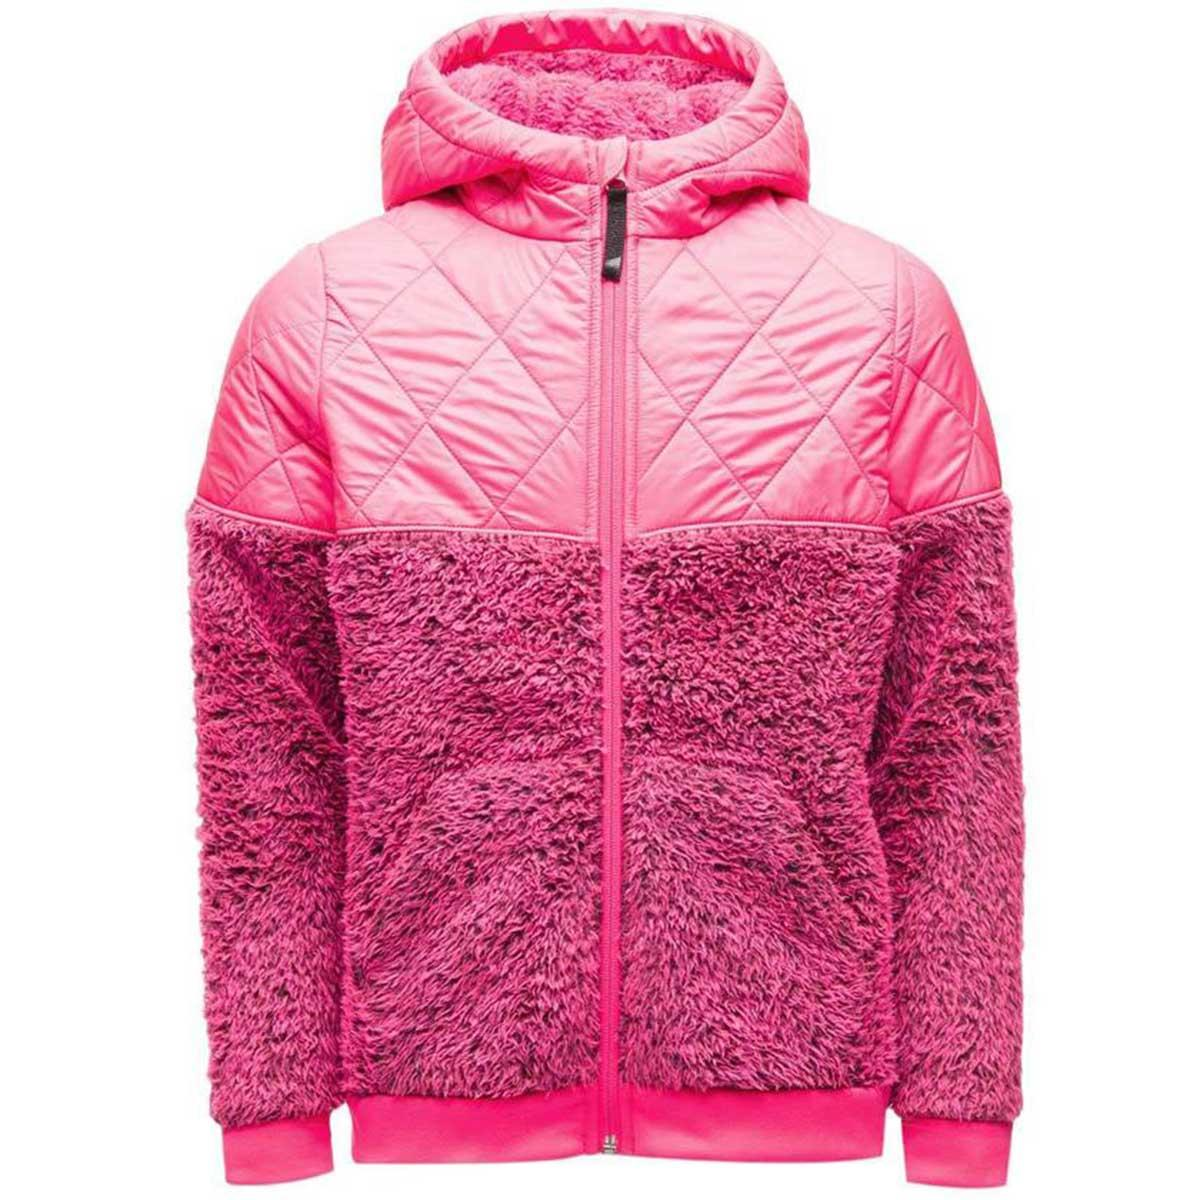 Spyder girls' Park Hoodie in Bryte Bubblegum main view